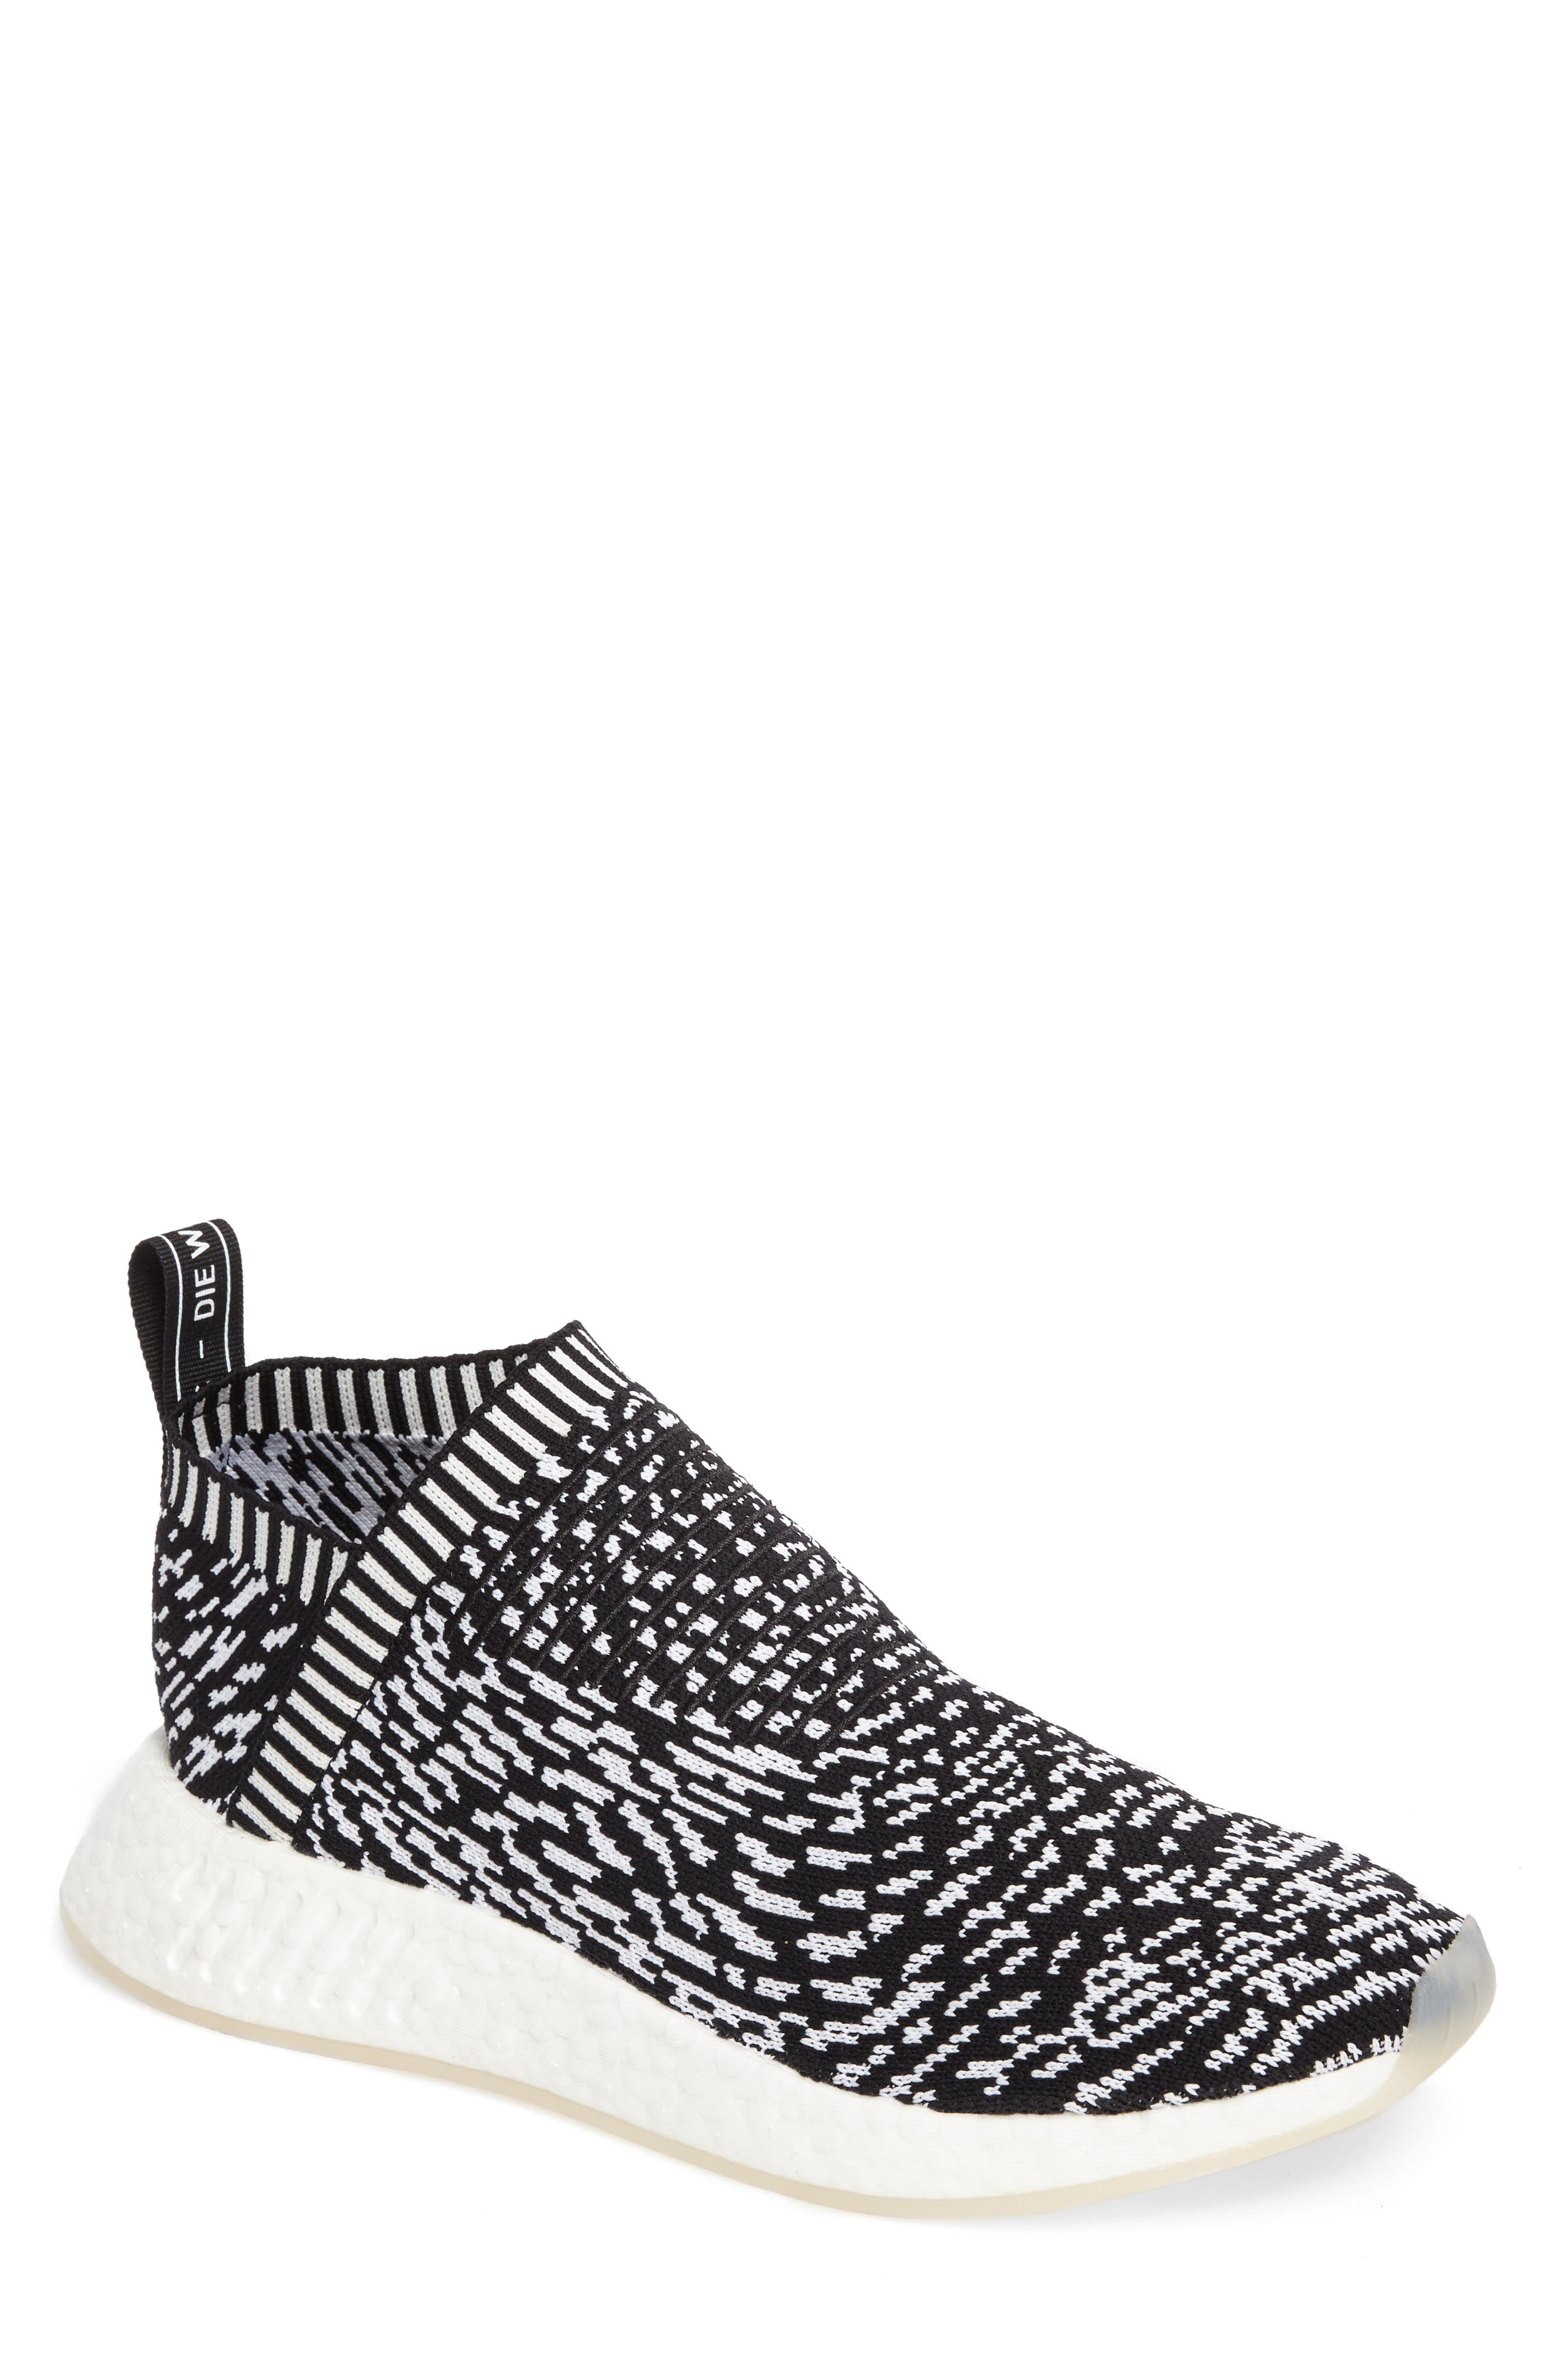 NMD_CS2 Primeknit Sneaker,                         Main,                         color,